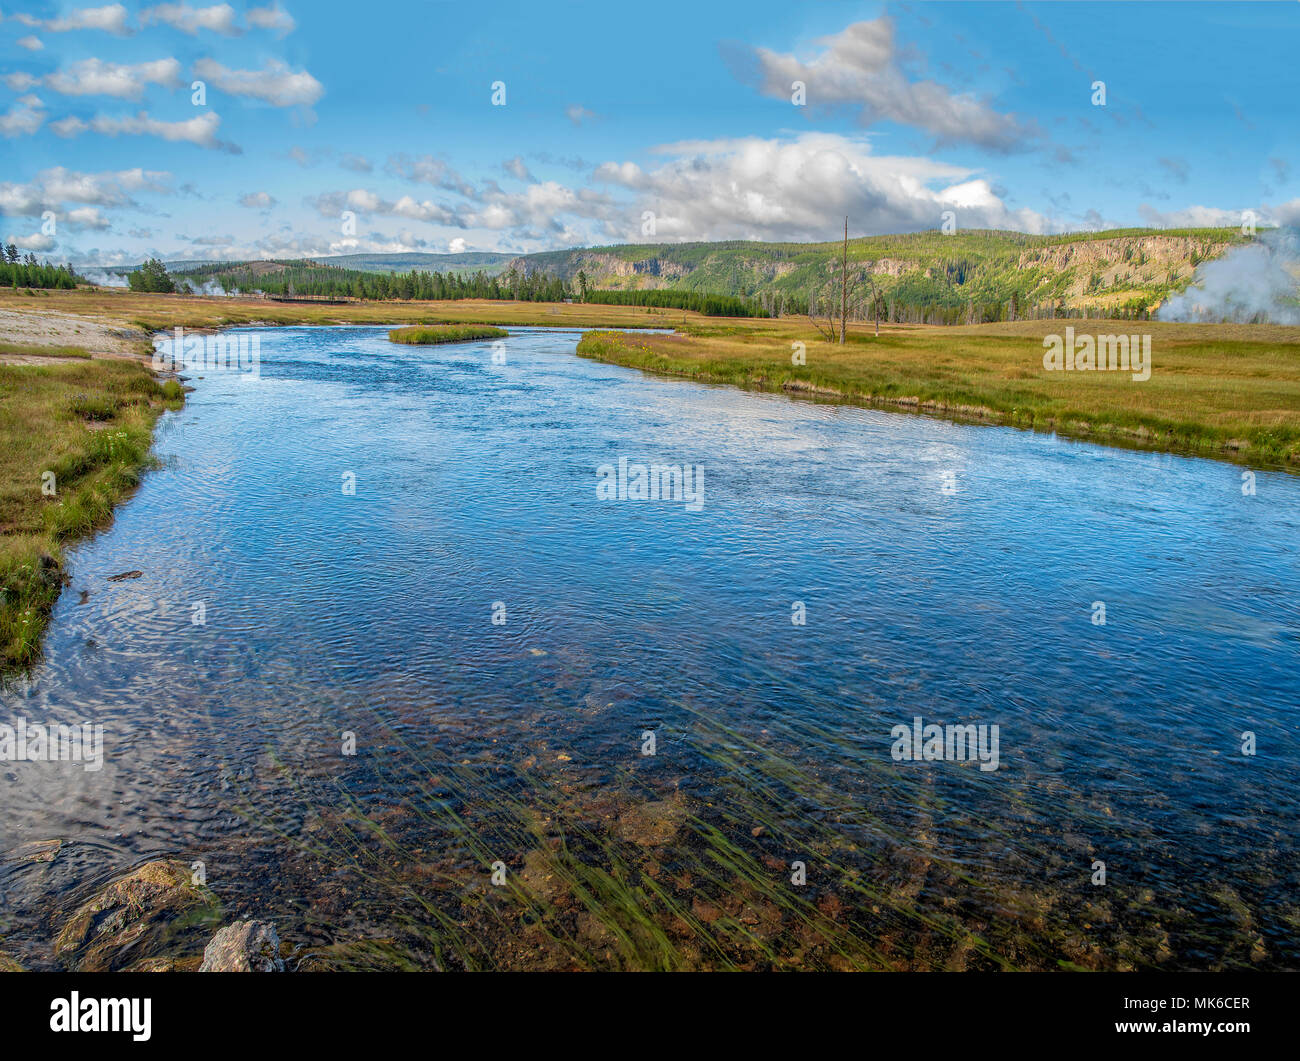 Slow moving river with green meadows heading toward mountains in the background under light blue sky with white fluffy clouds. - Stock Image